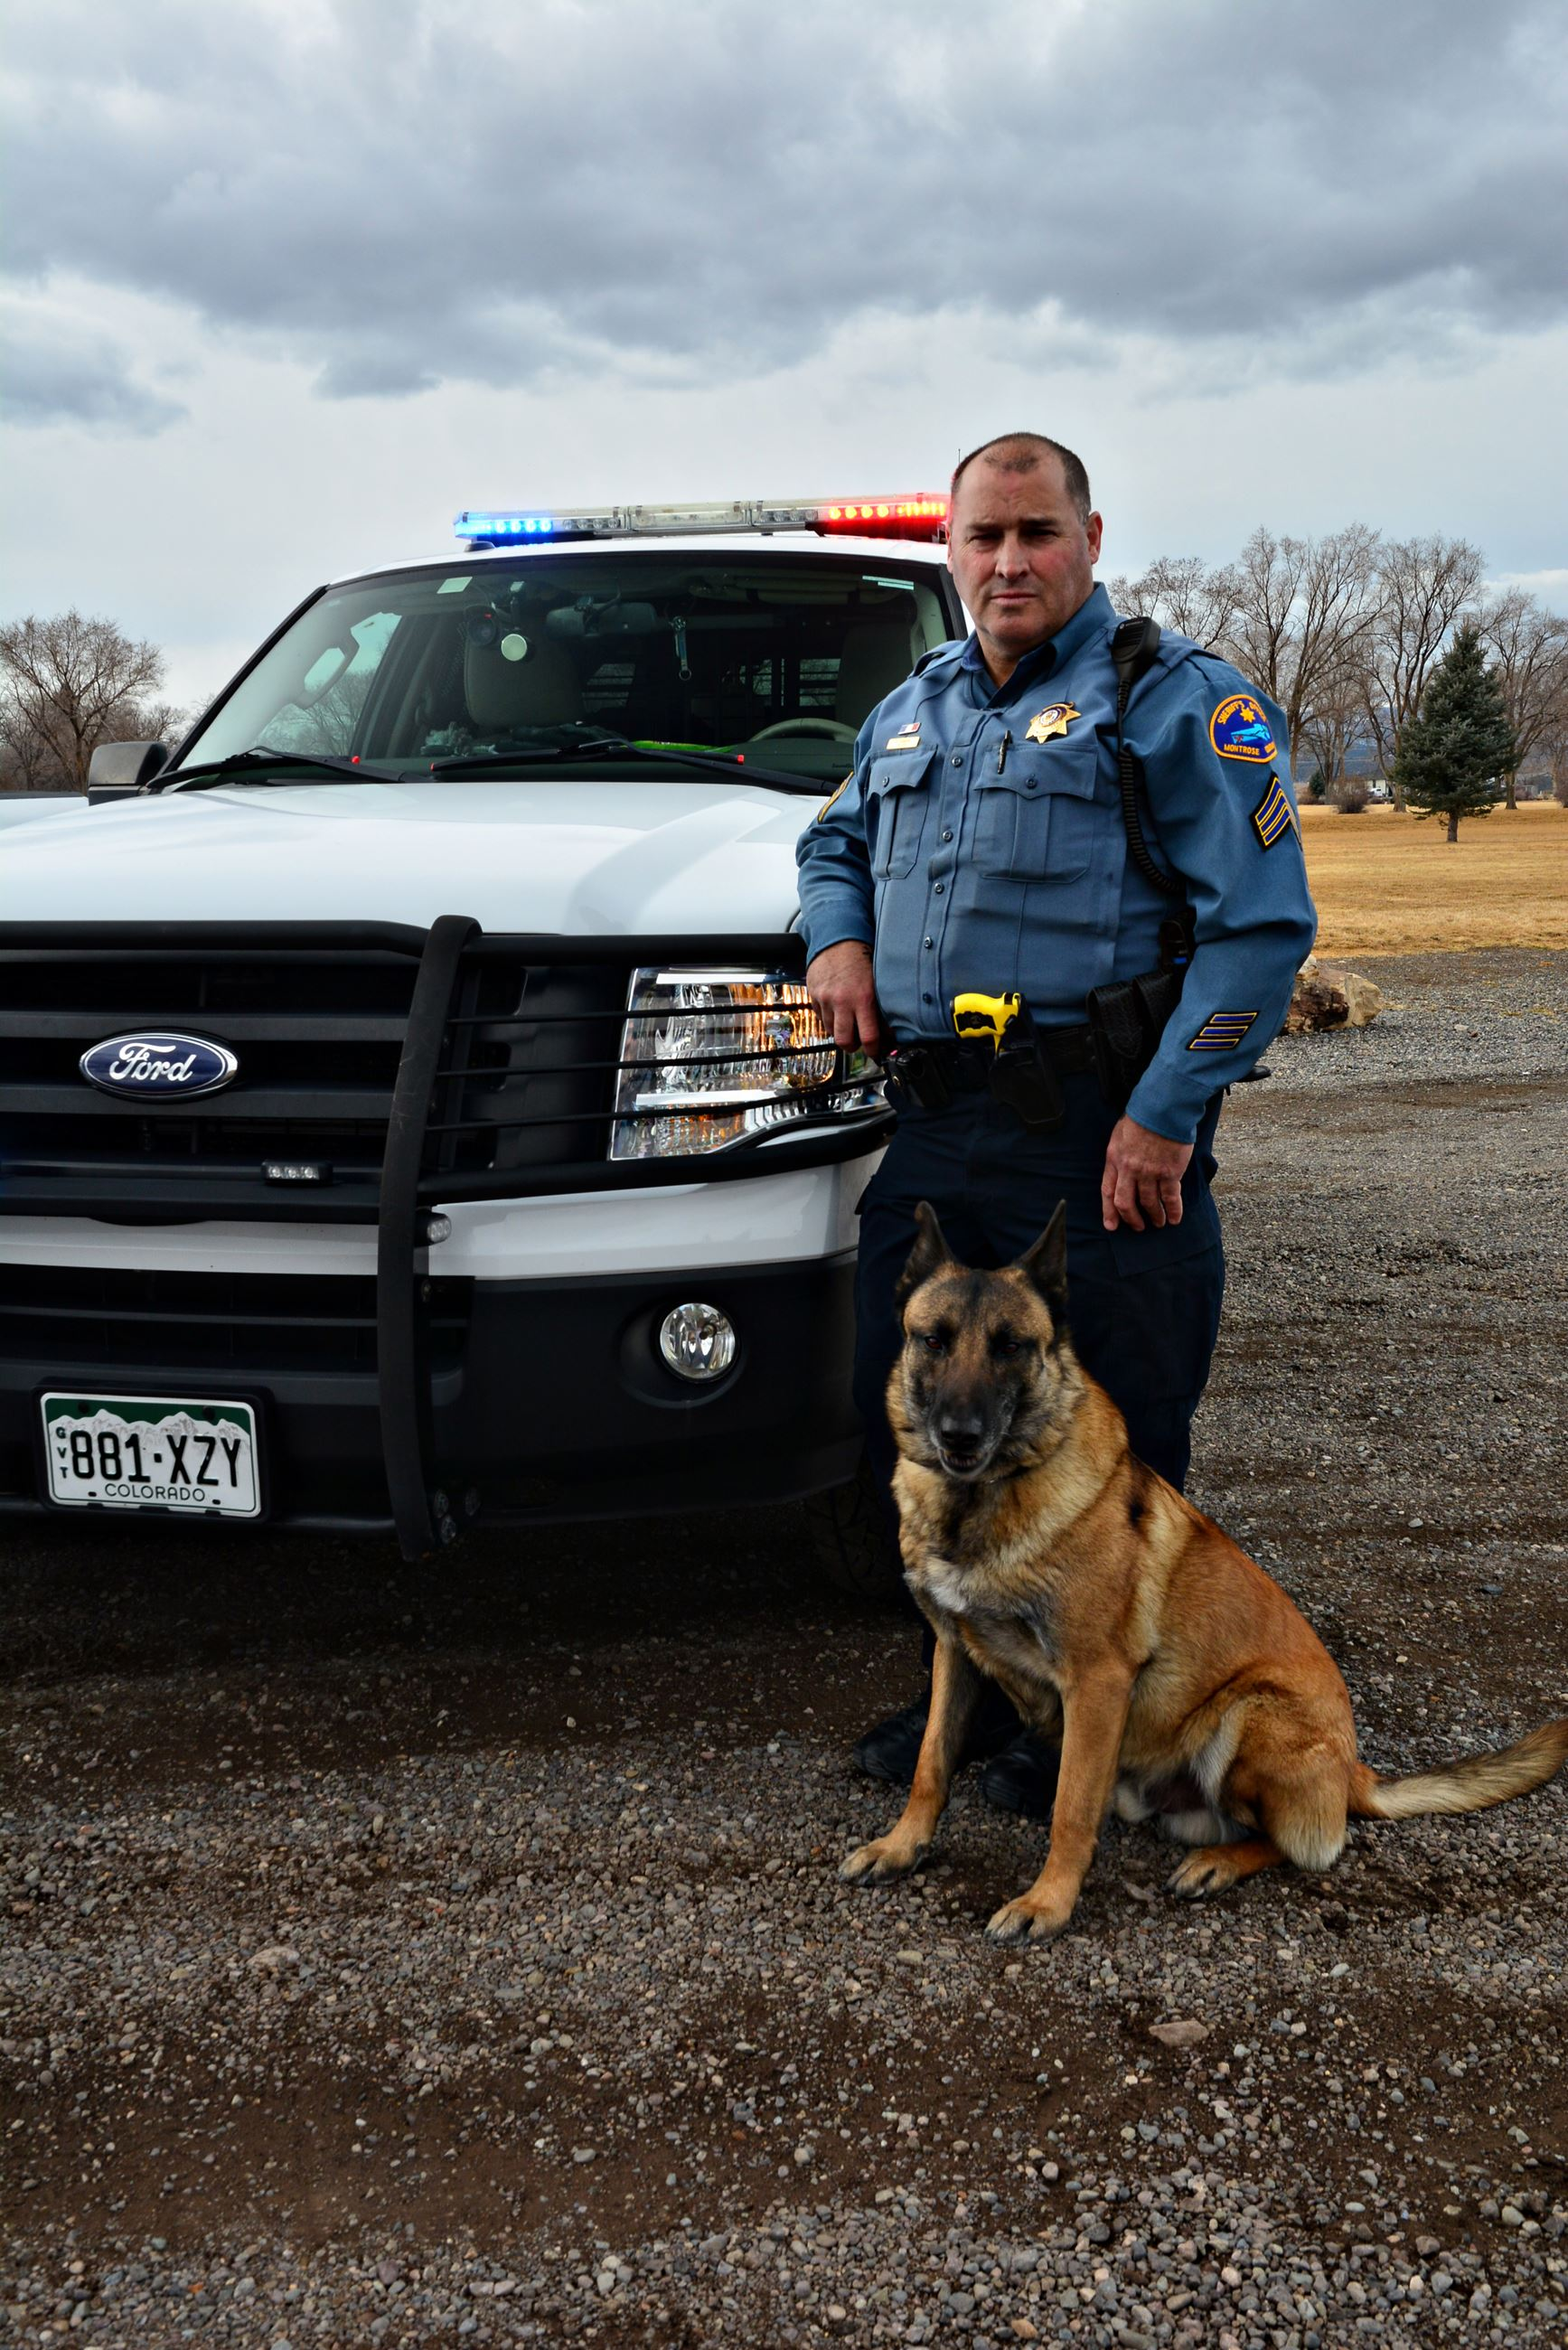 Sgt. Sanders and K-9 Oxx